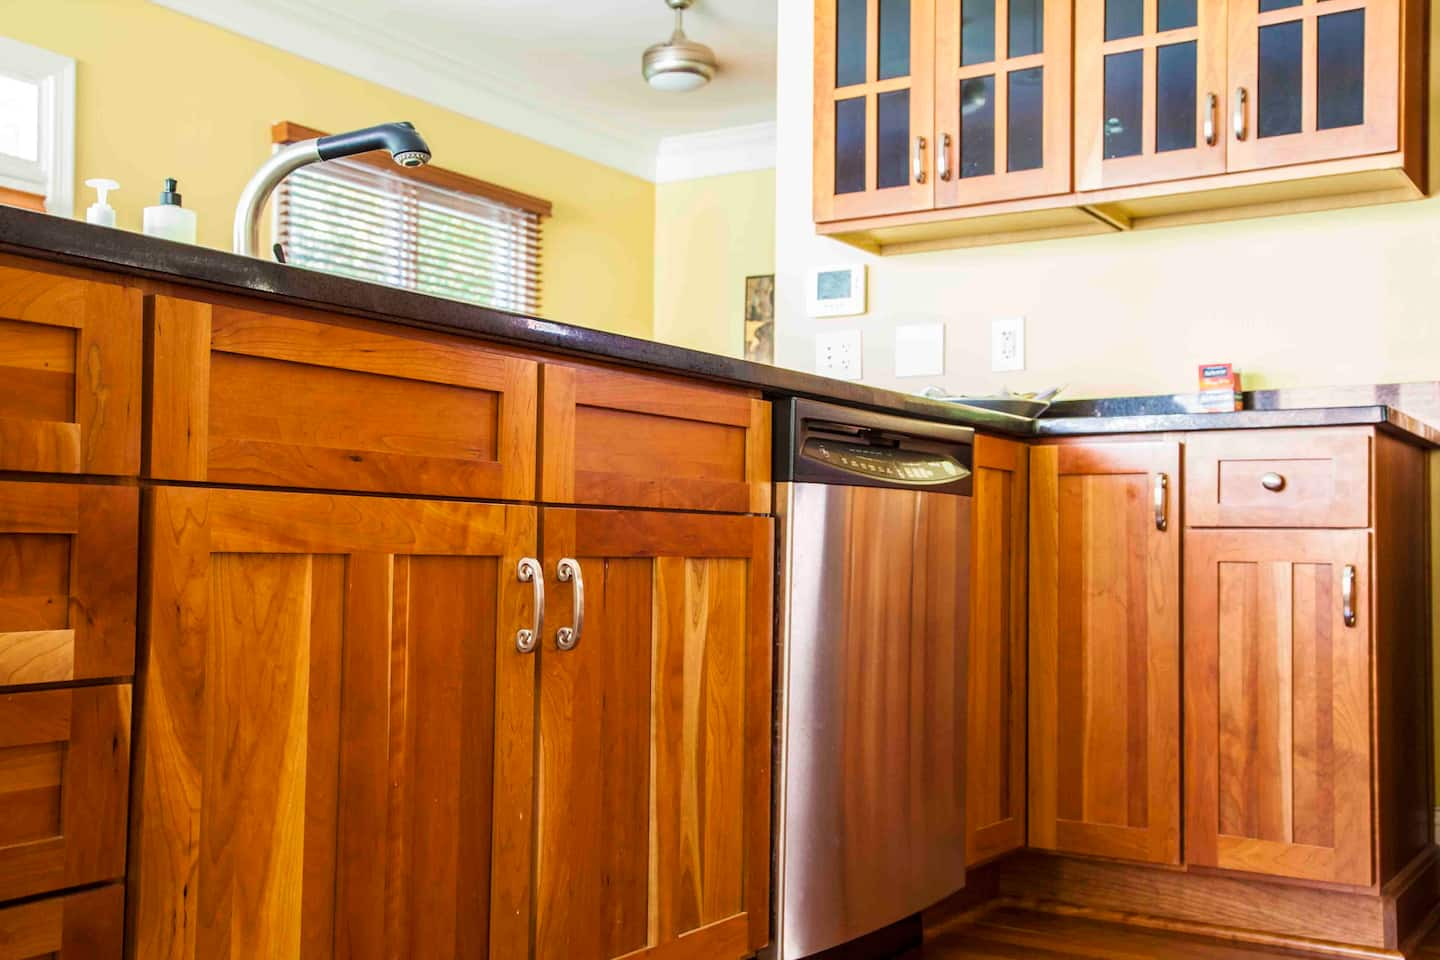 Kitchen cabinet standard dimensions design photos for Ready made kitchen units for sale